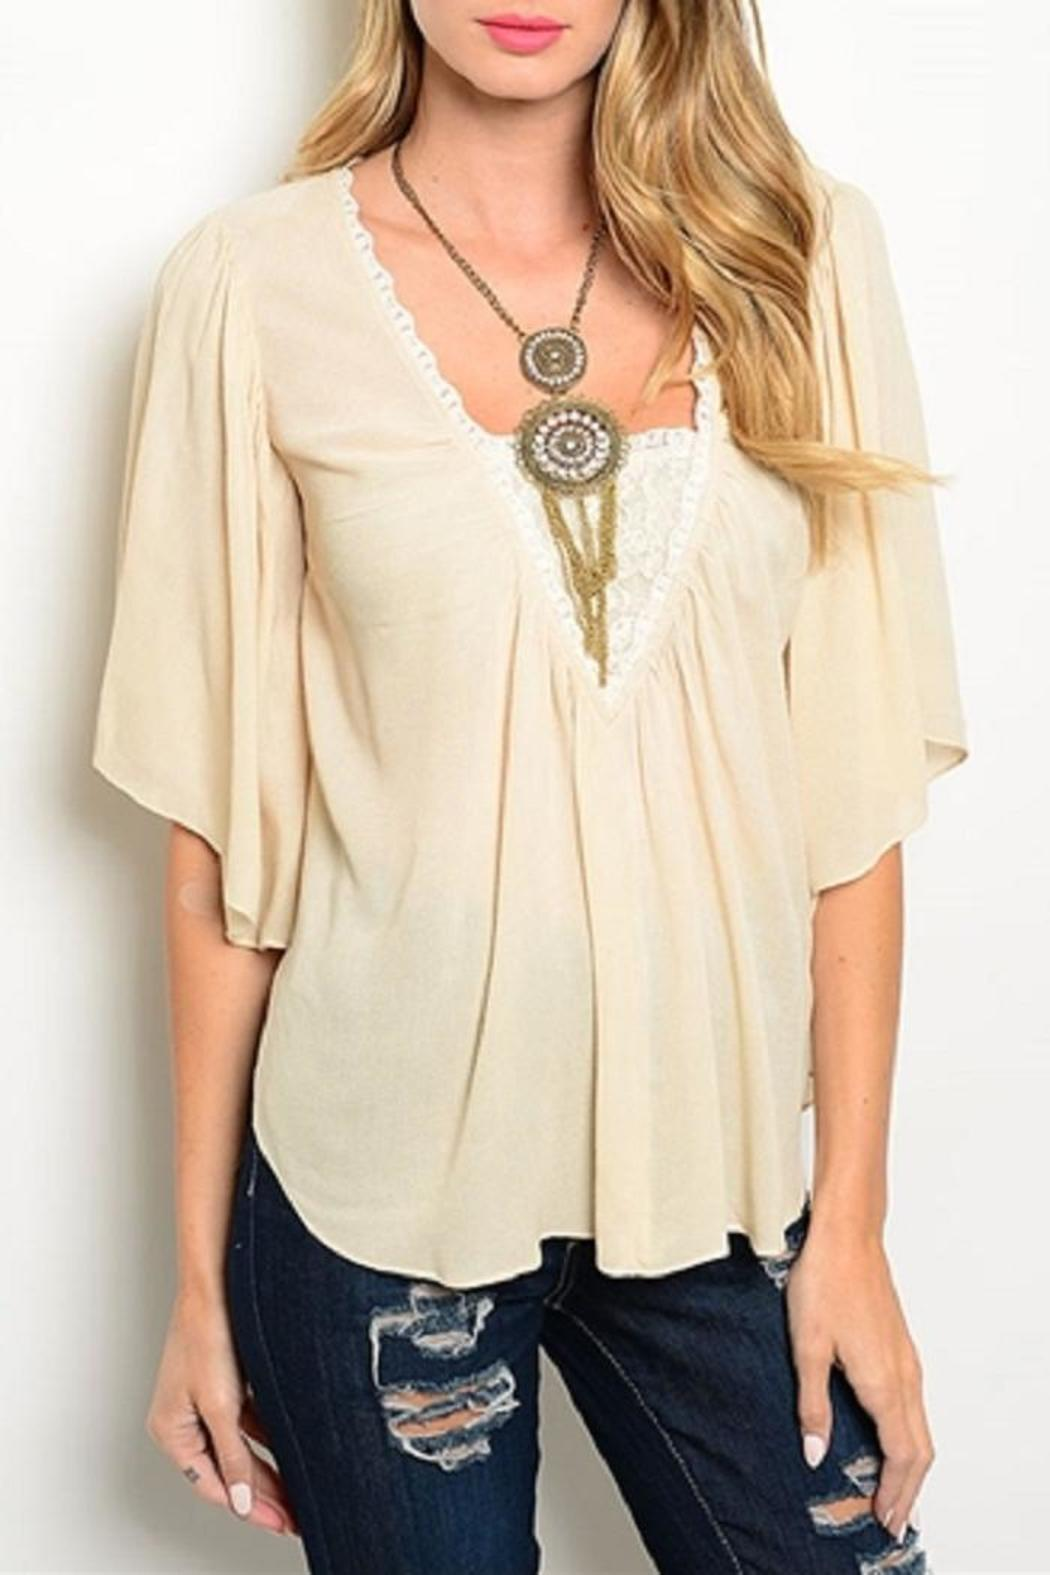 Adore Clothes & More Beige Top - Main Image